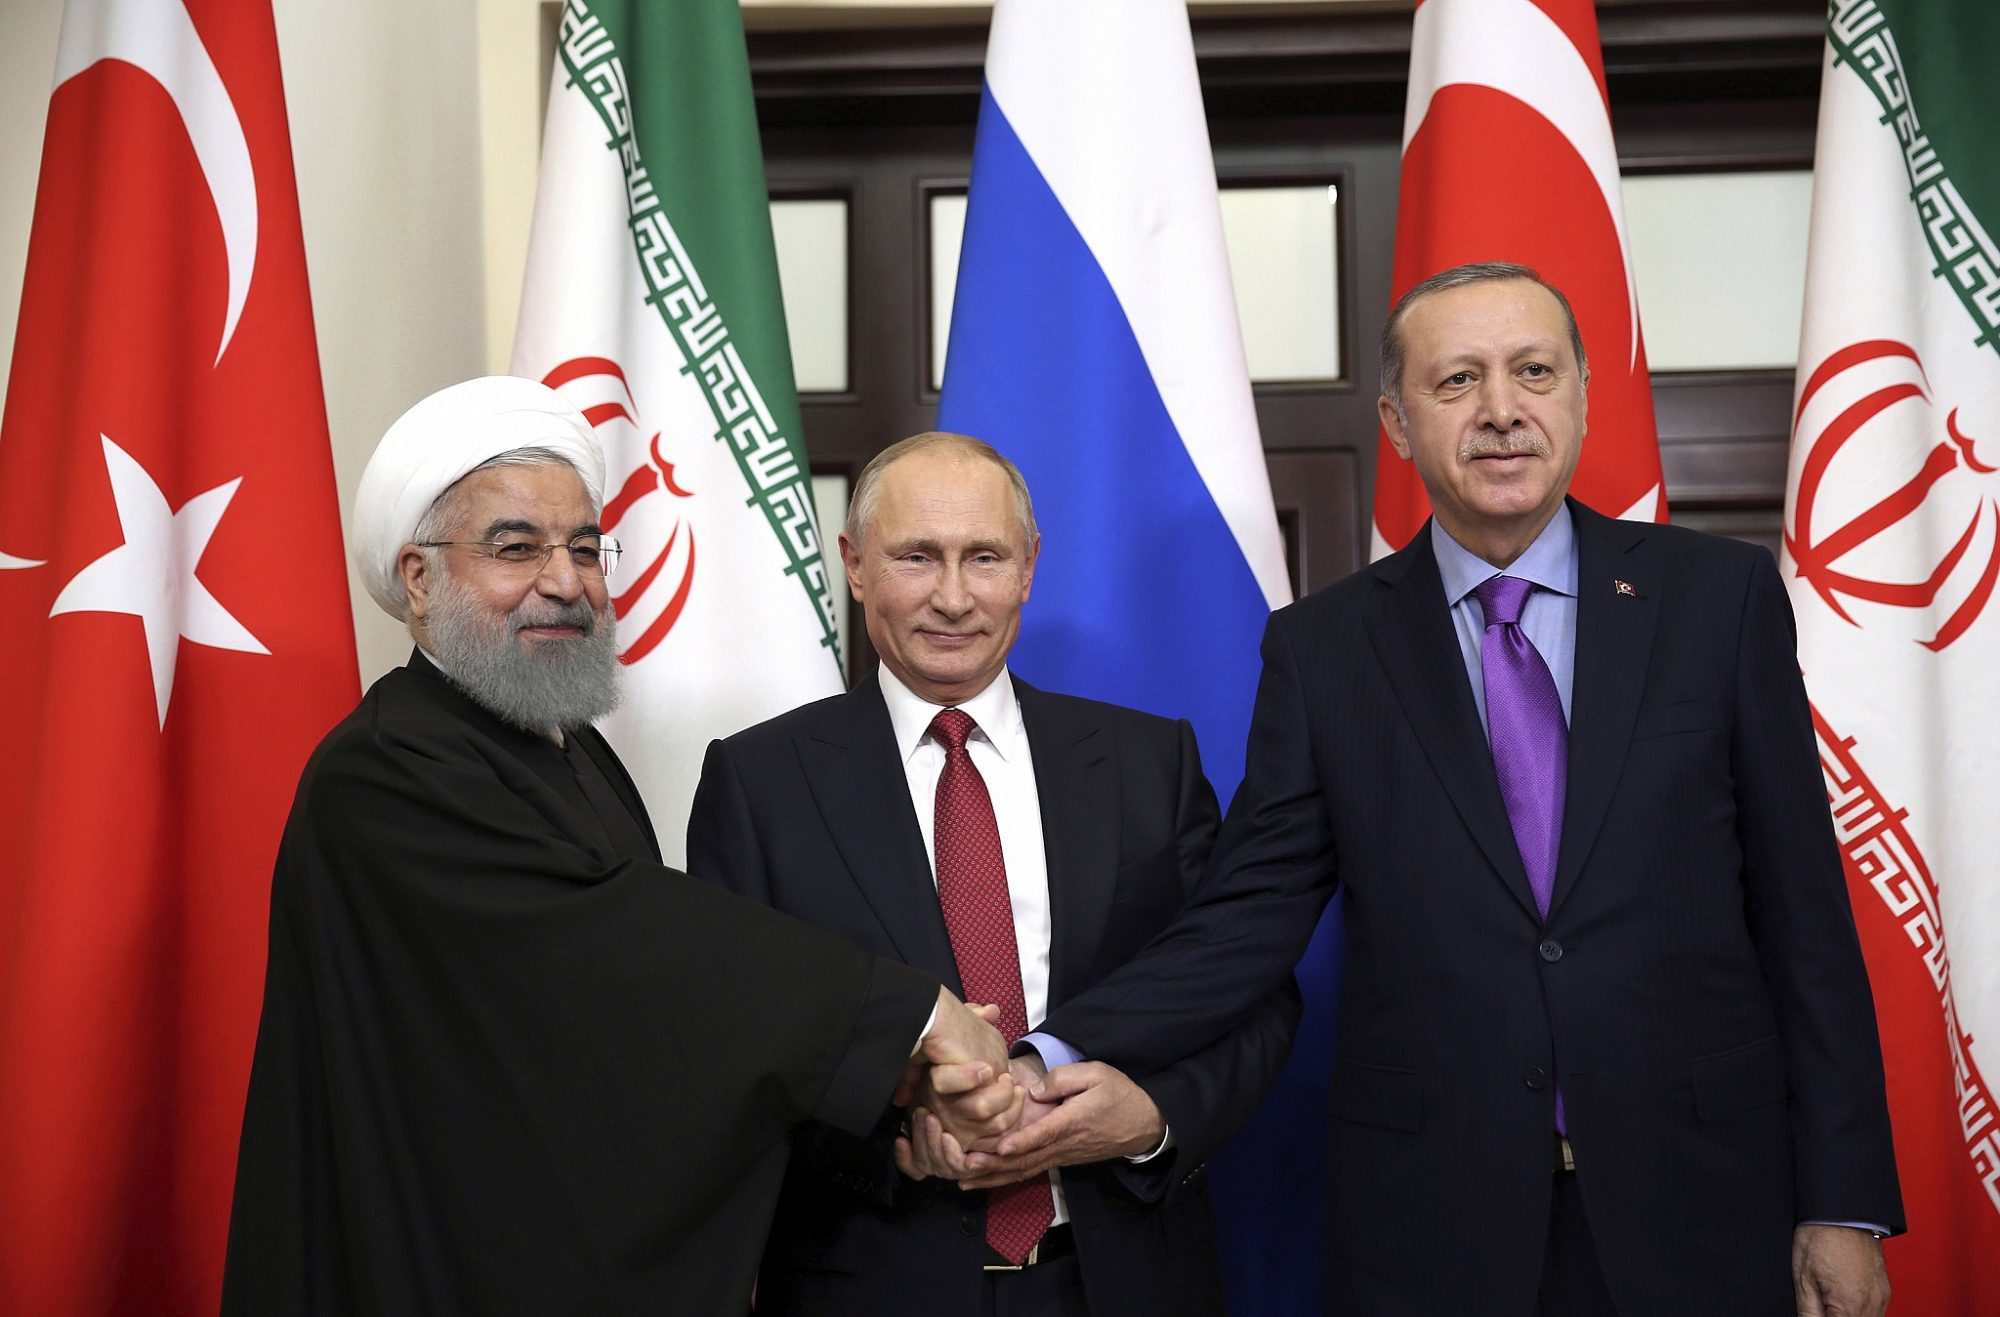 Upd / Erdogan heads to Tehran for trilateral summit on Syria, 8 European countries call for 'restraint'